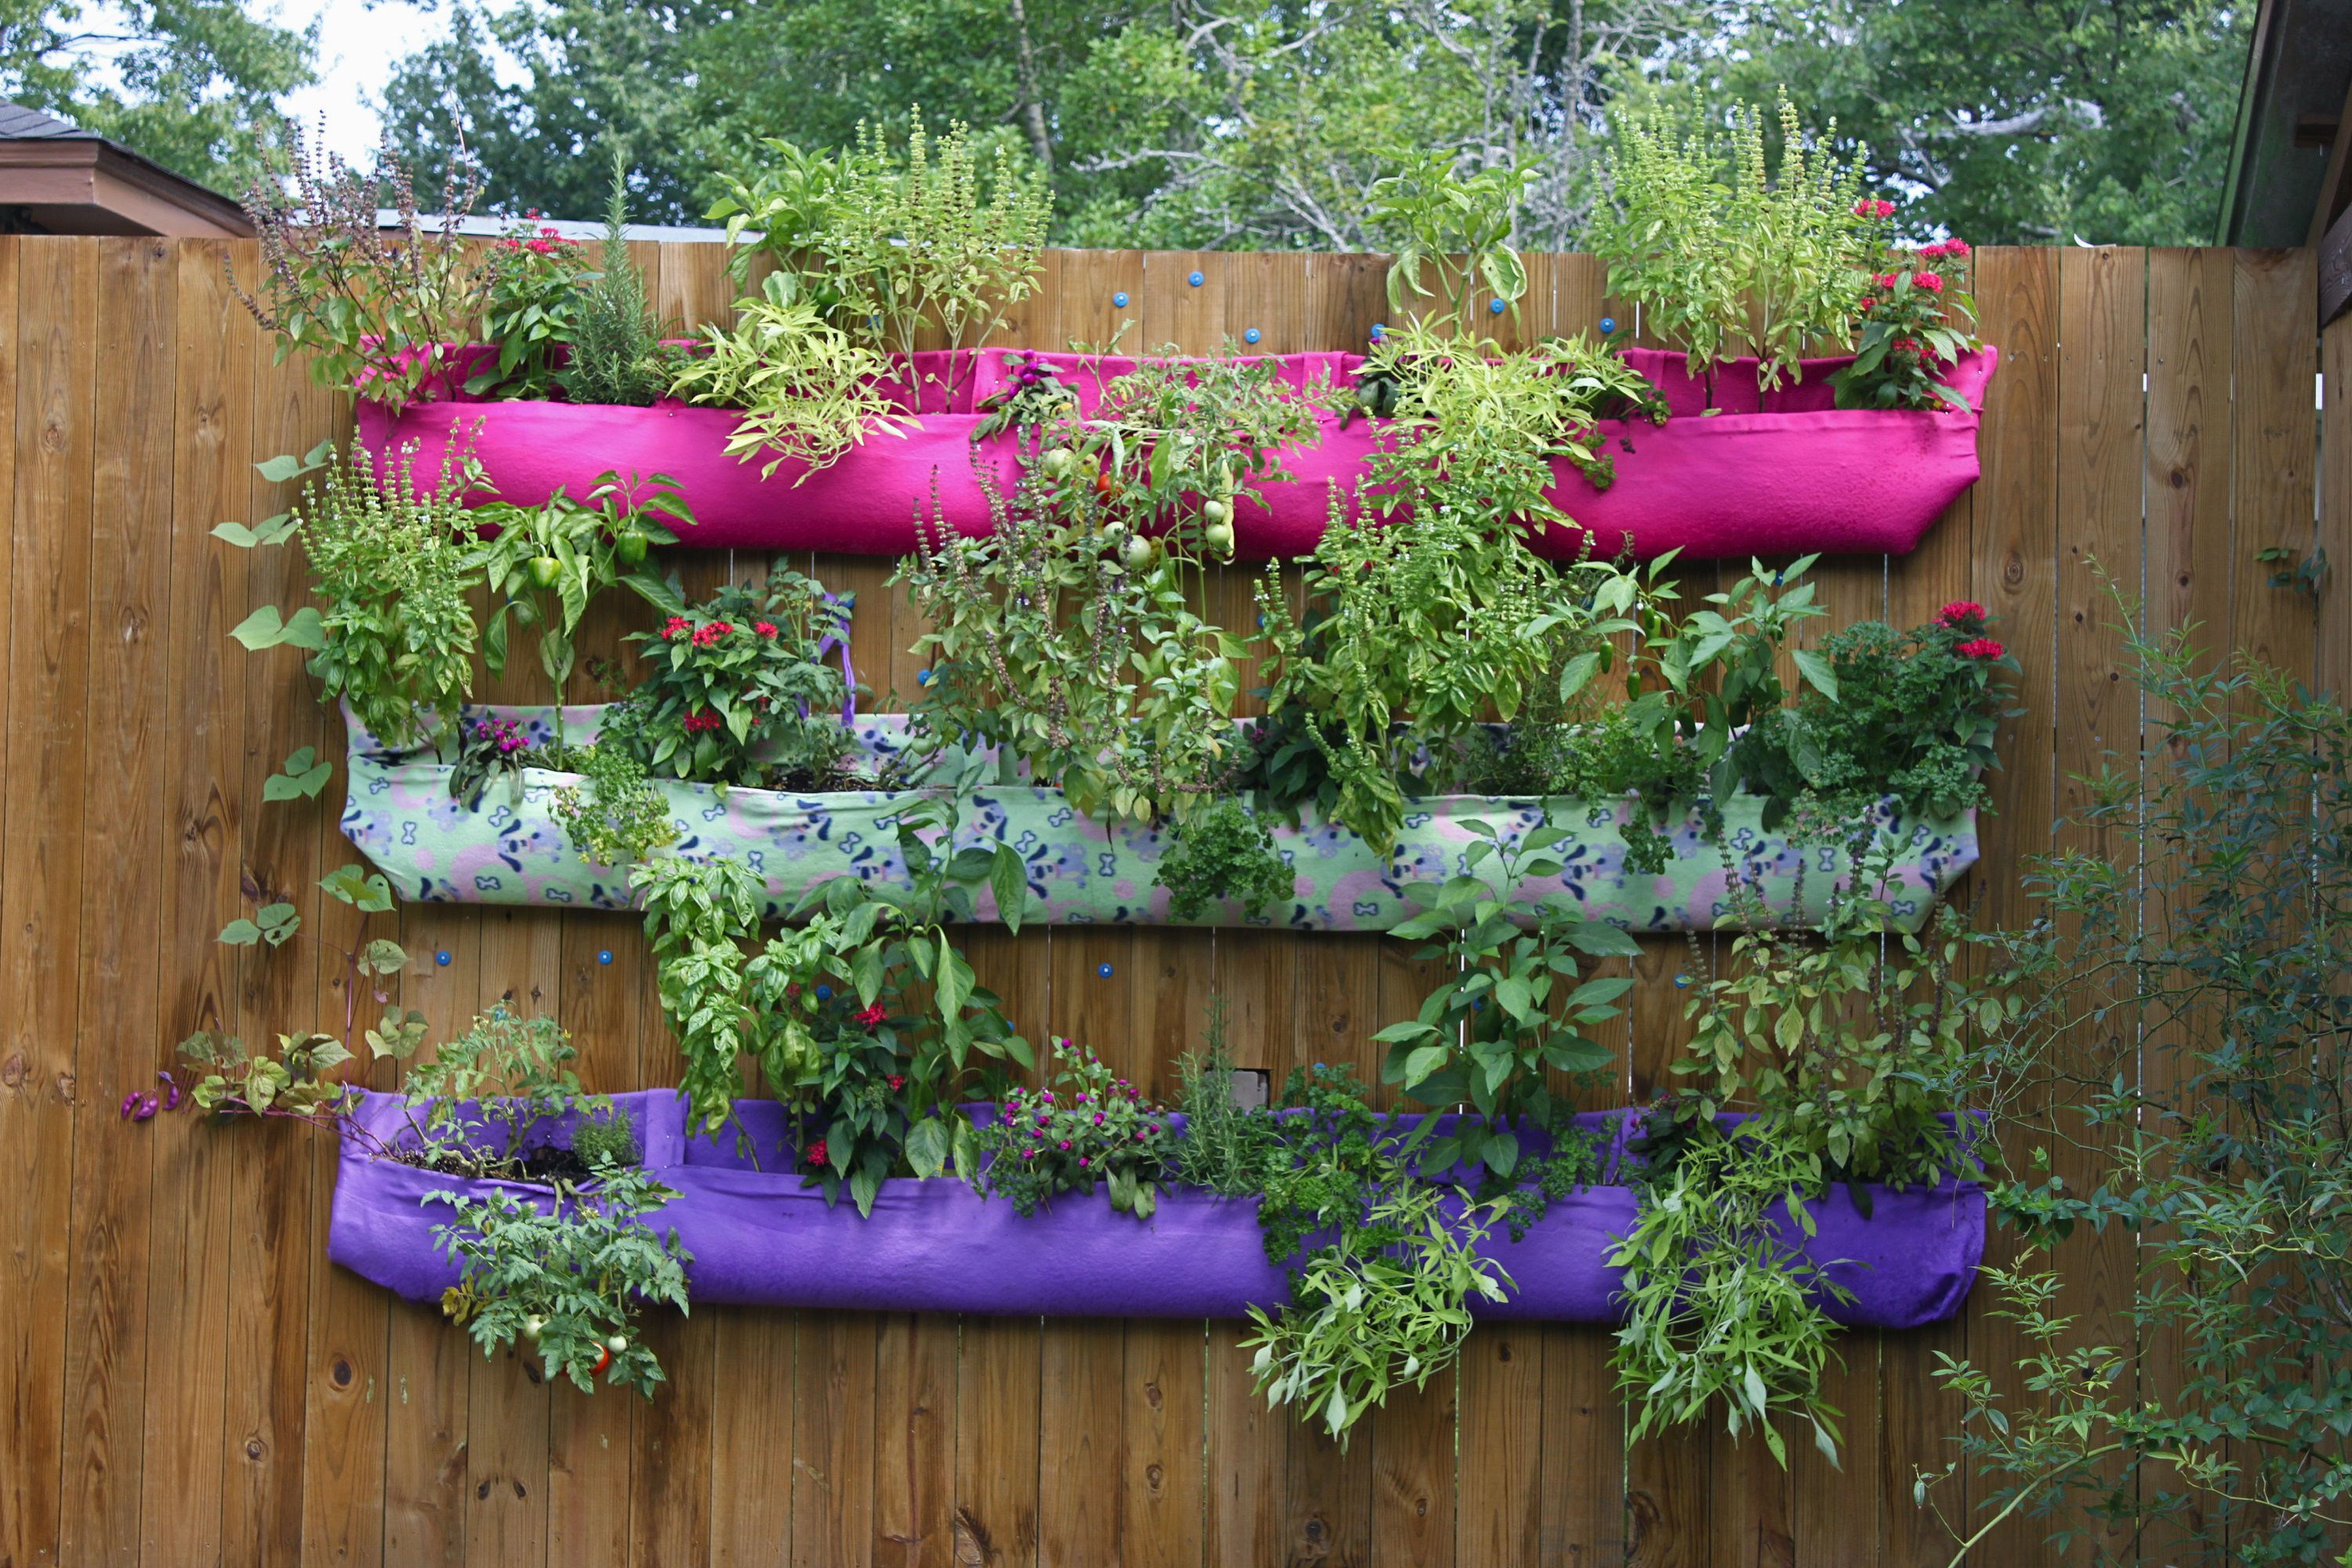 Wall pocket garden with three rows of plants mounted on a wall.